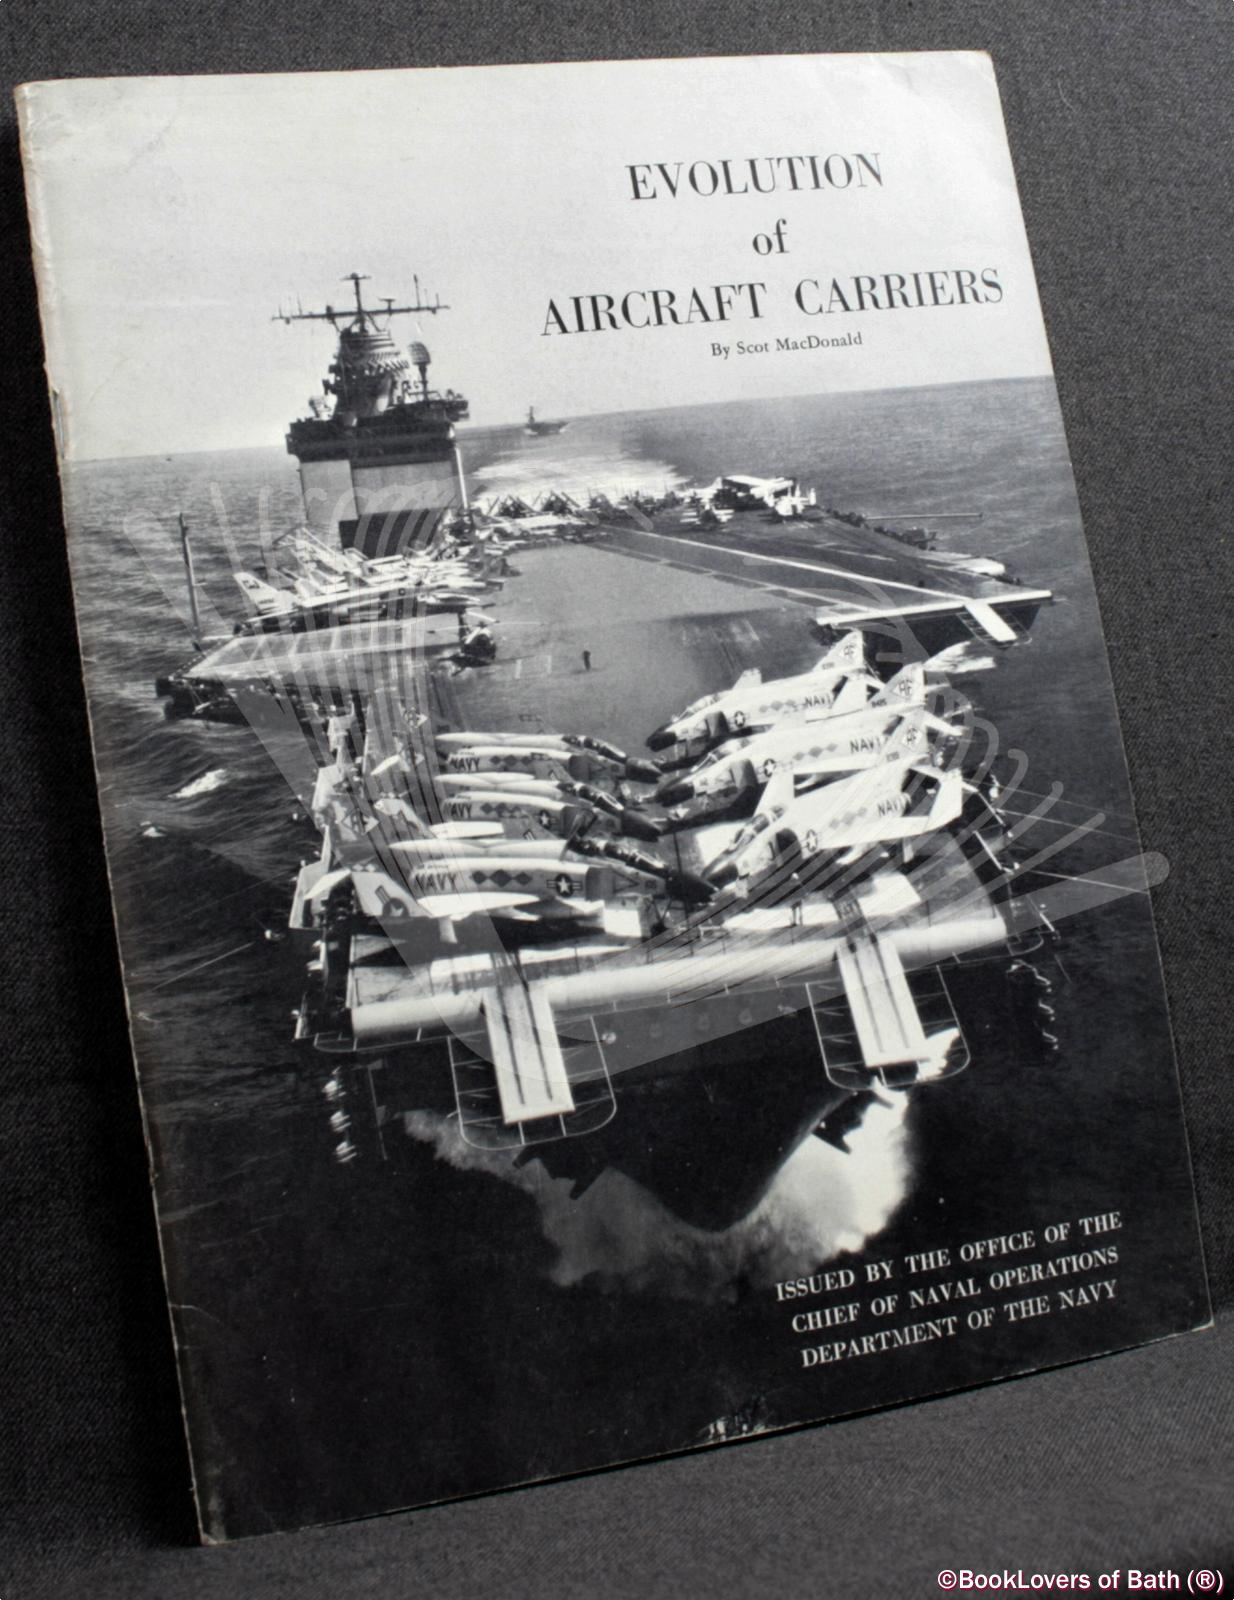 Evolution of Aircraft Carriers - Scot MacDonald